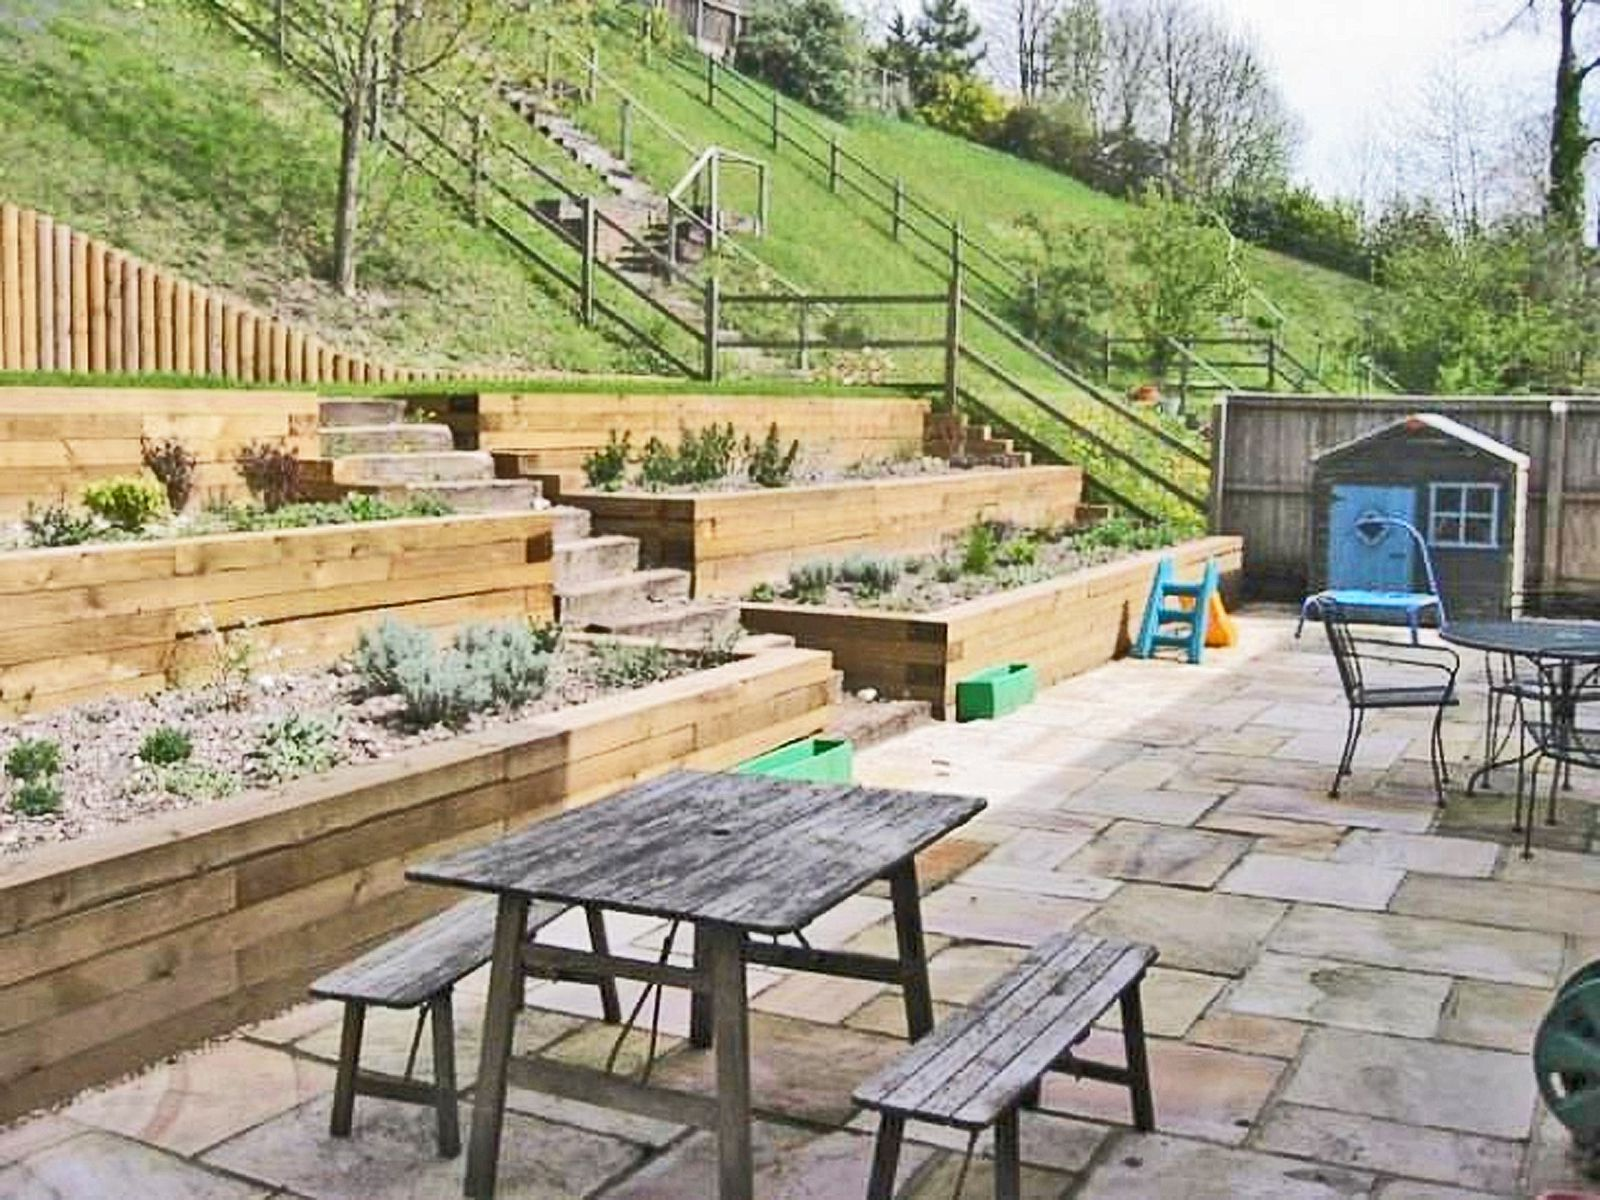 Wooden Wall Landscape for Backyard Garden